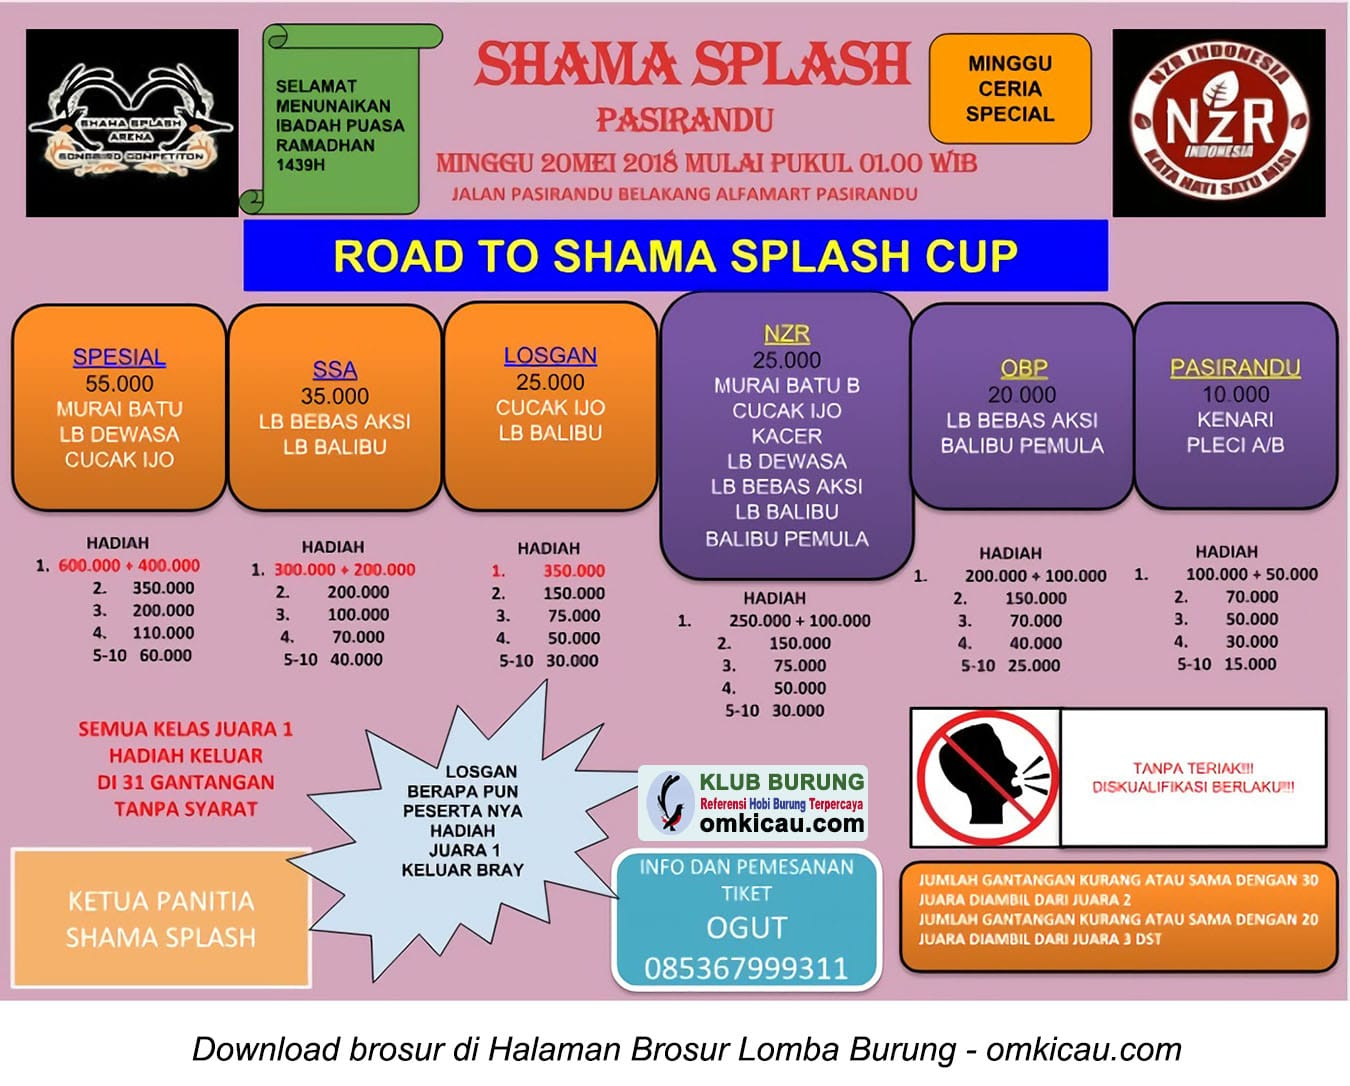 Road to Shama Splash Cup